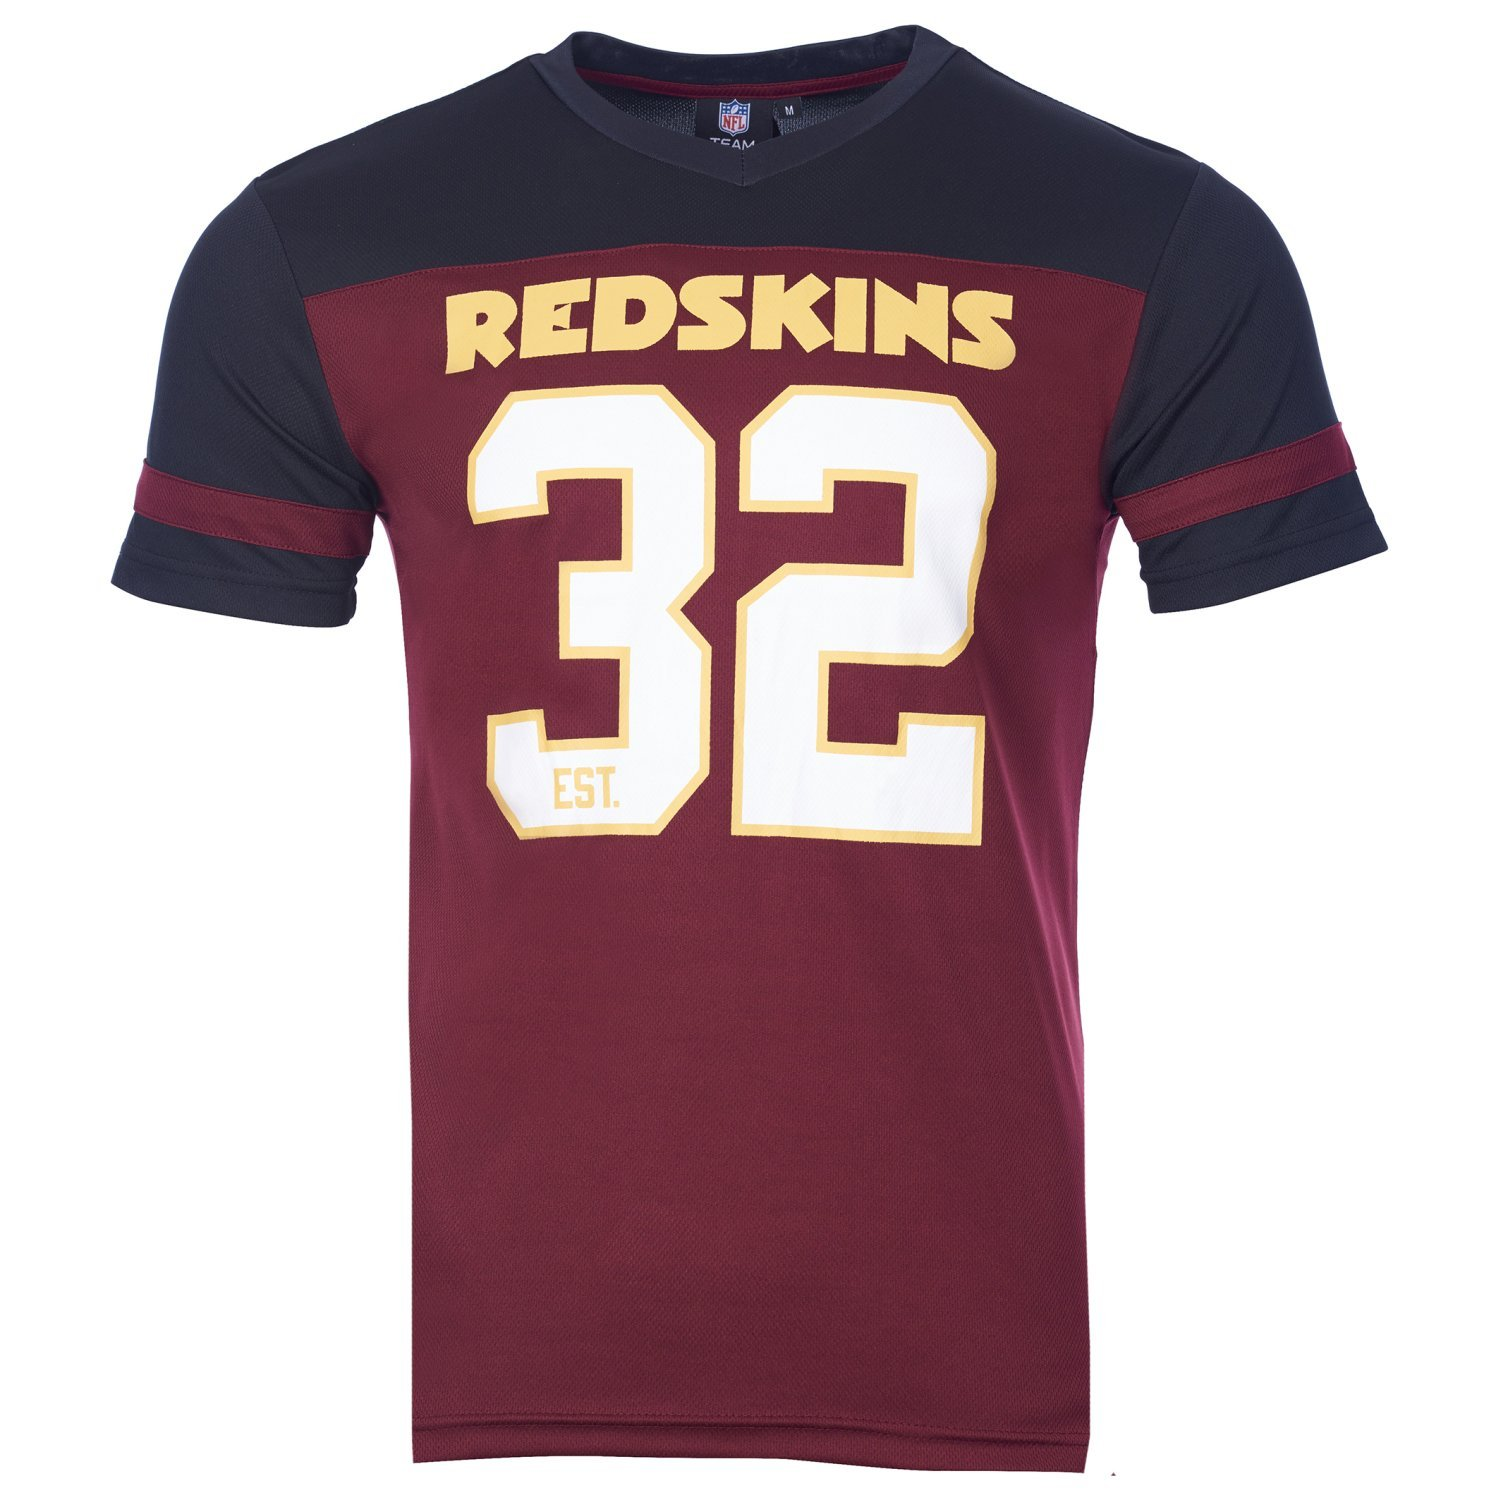 Majestic NFL Poly-Mesh Jersey Shirt - Washington Redskins Majestic Athletics